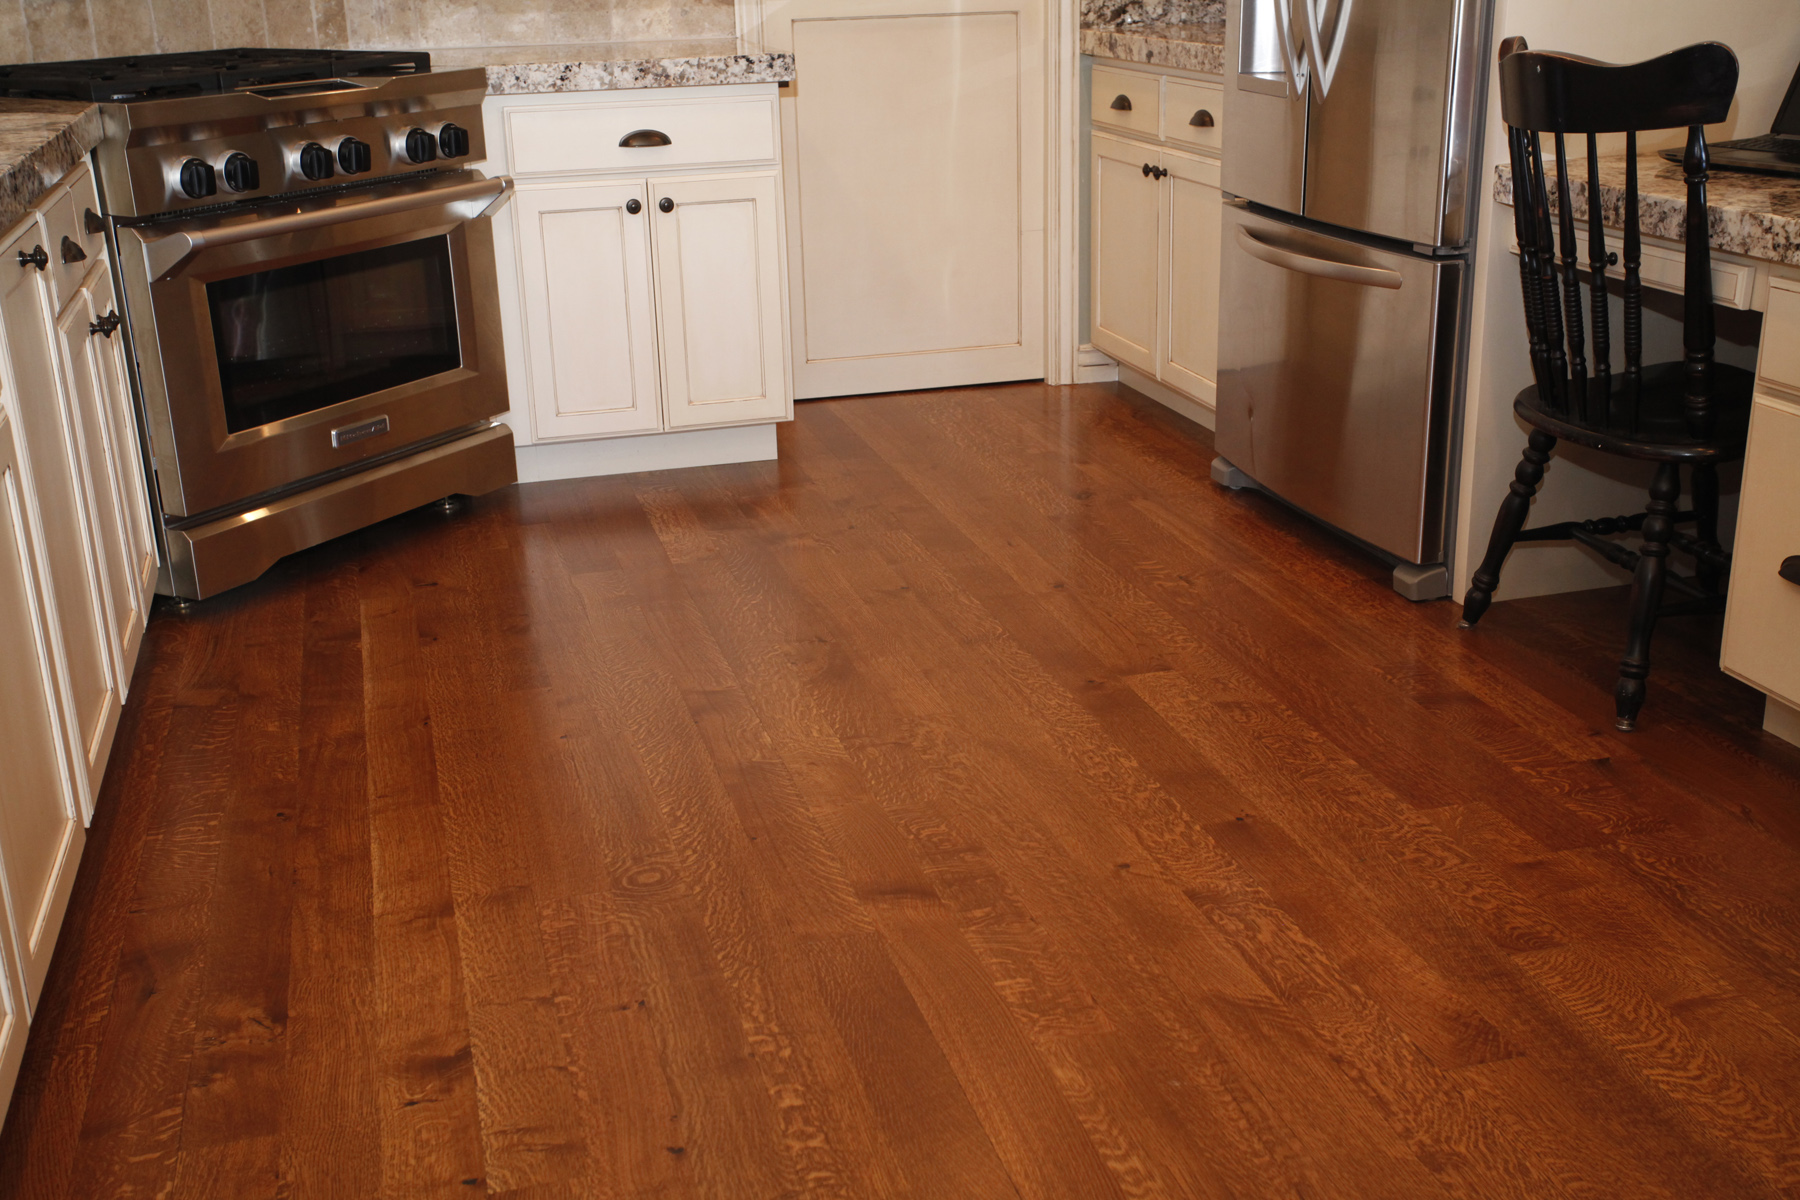 carson s custom hardwood floors utah hardwood flooring On wood floors in kitchens